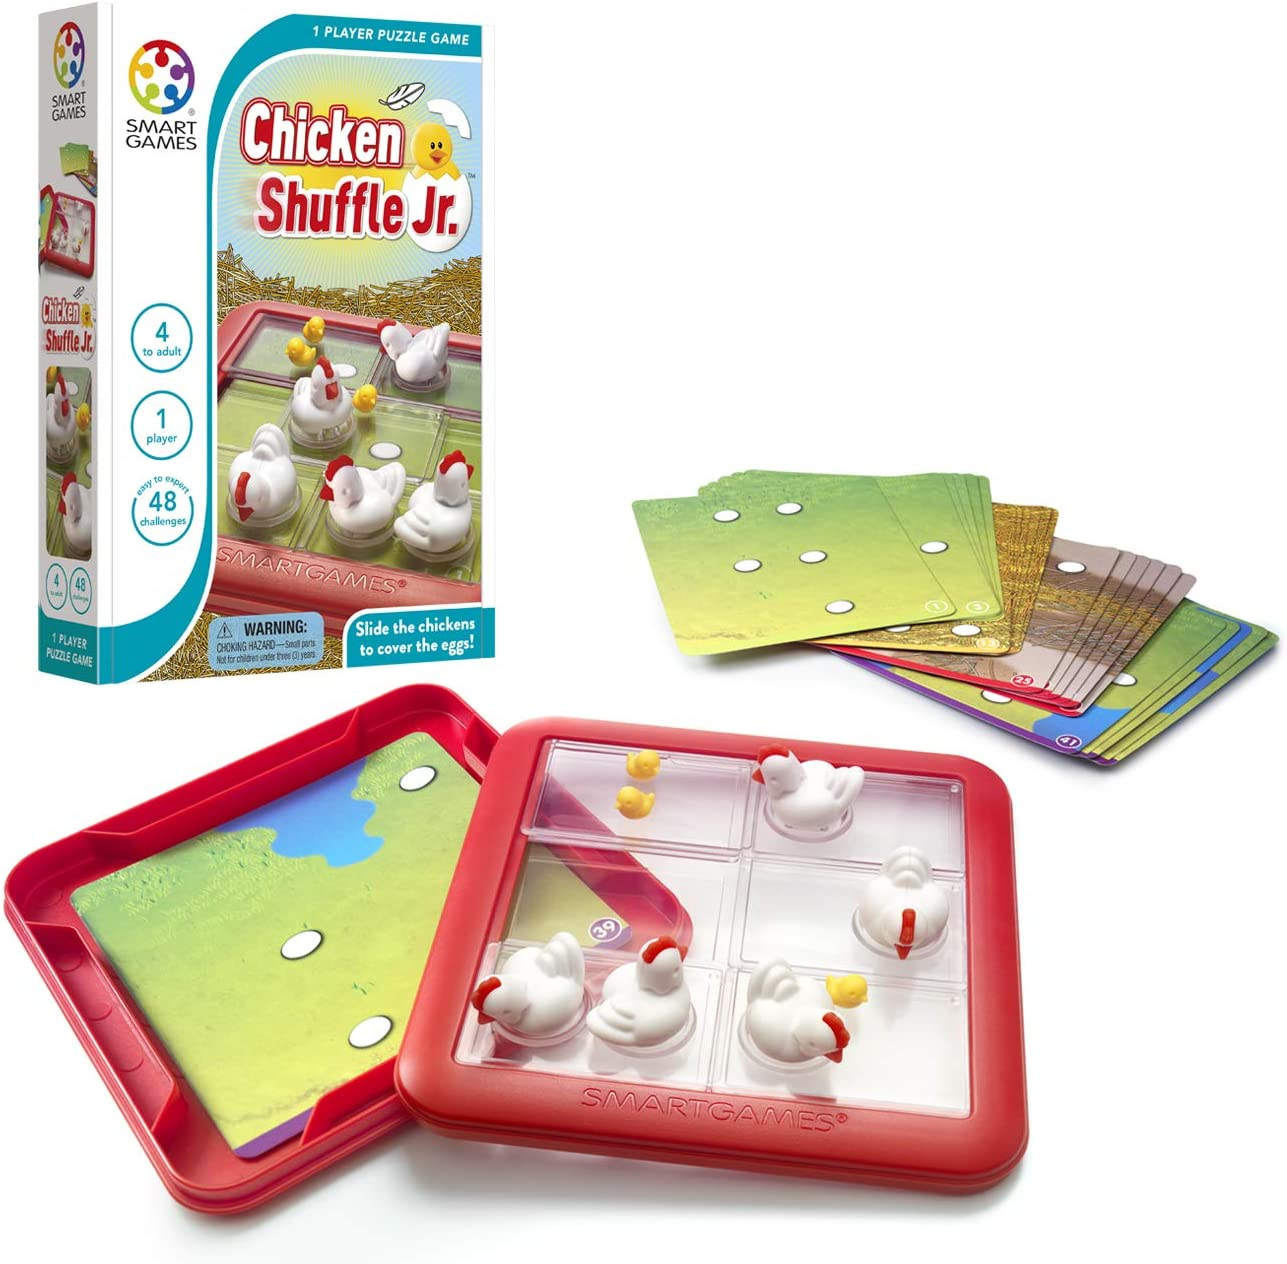 Young Kids Are Being Shuffled From One Activity To Another In >> Smartgames Chicken Shuffle Jr Travel Game For Kids A Cognitive Skill Building Brain Game Brain Teaser For Ages 4 Up 48 Challenges